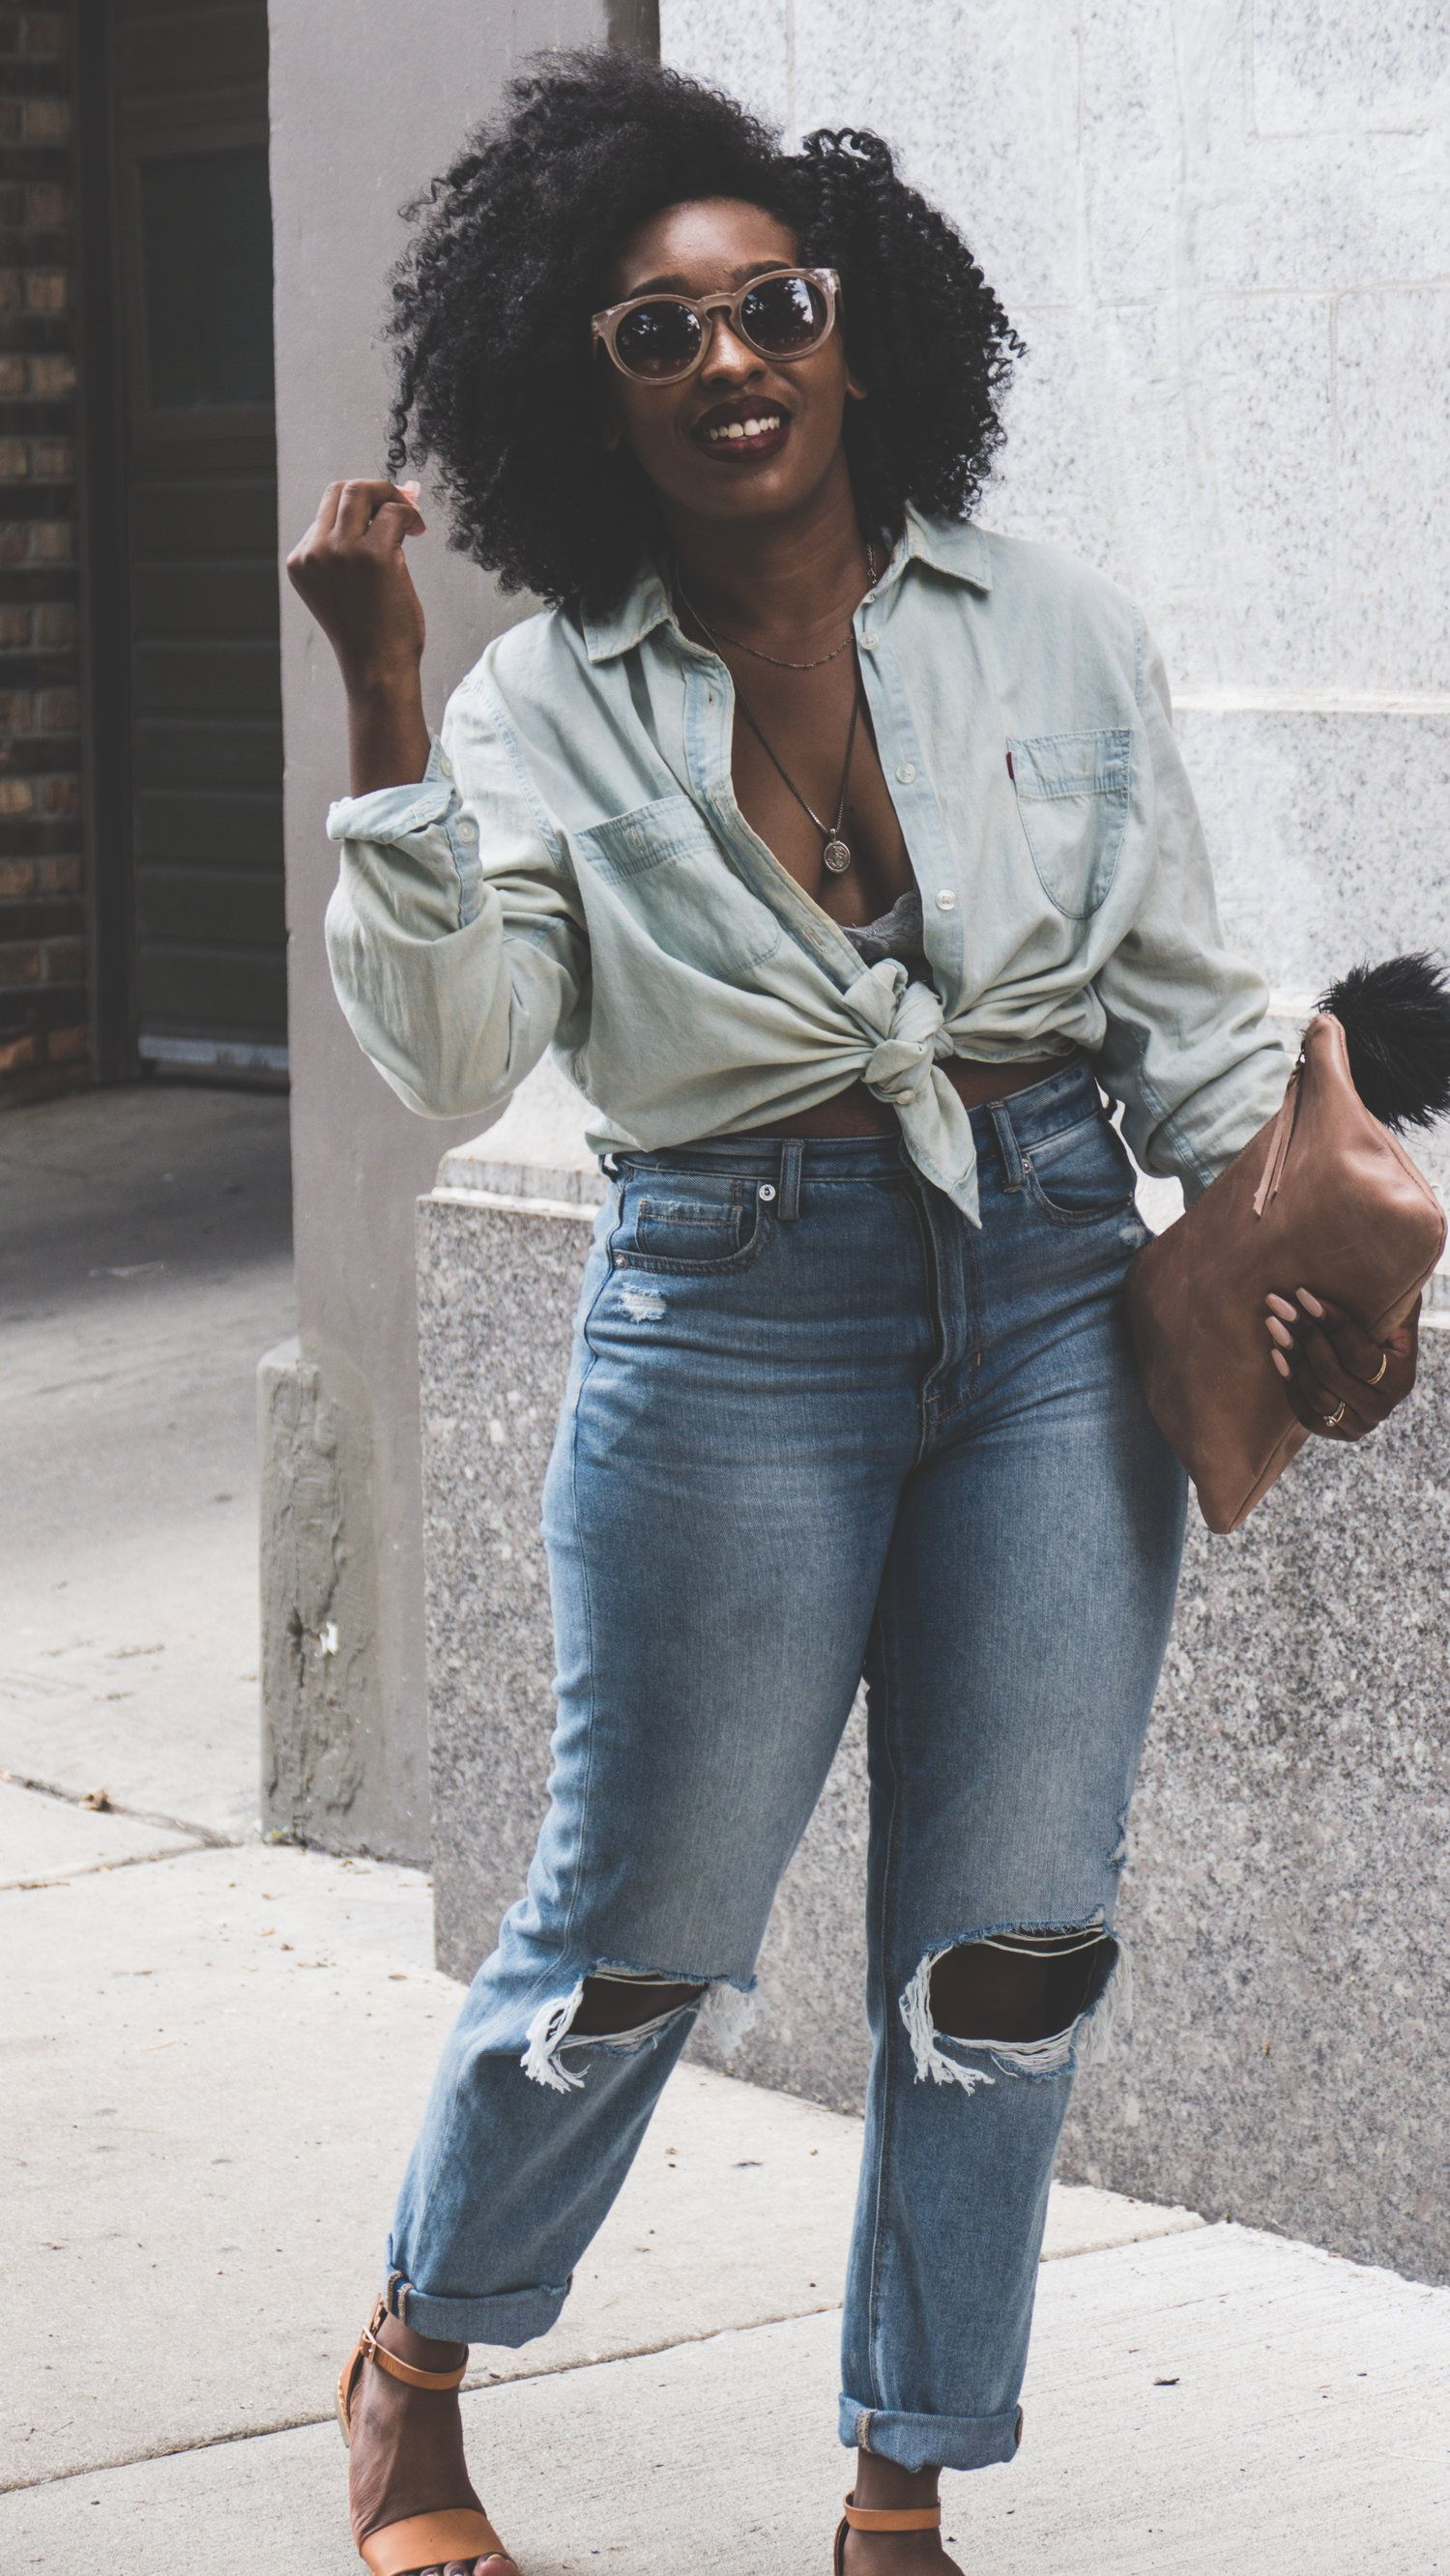 c11ec7a1cc 4 creative ways to style a basic button up